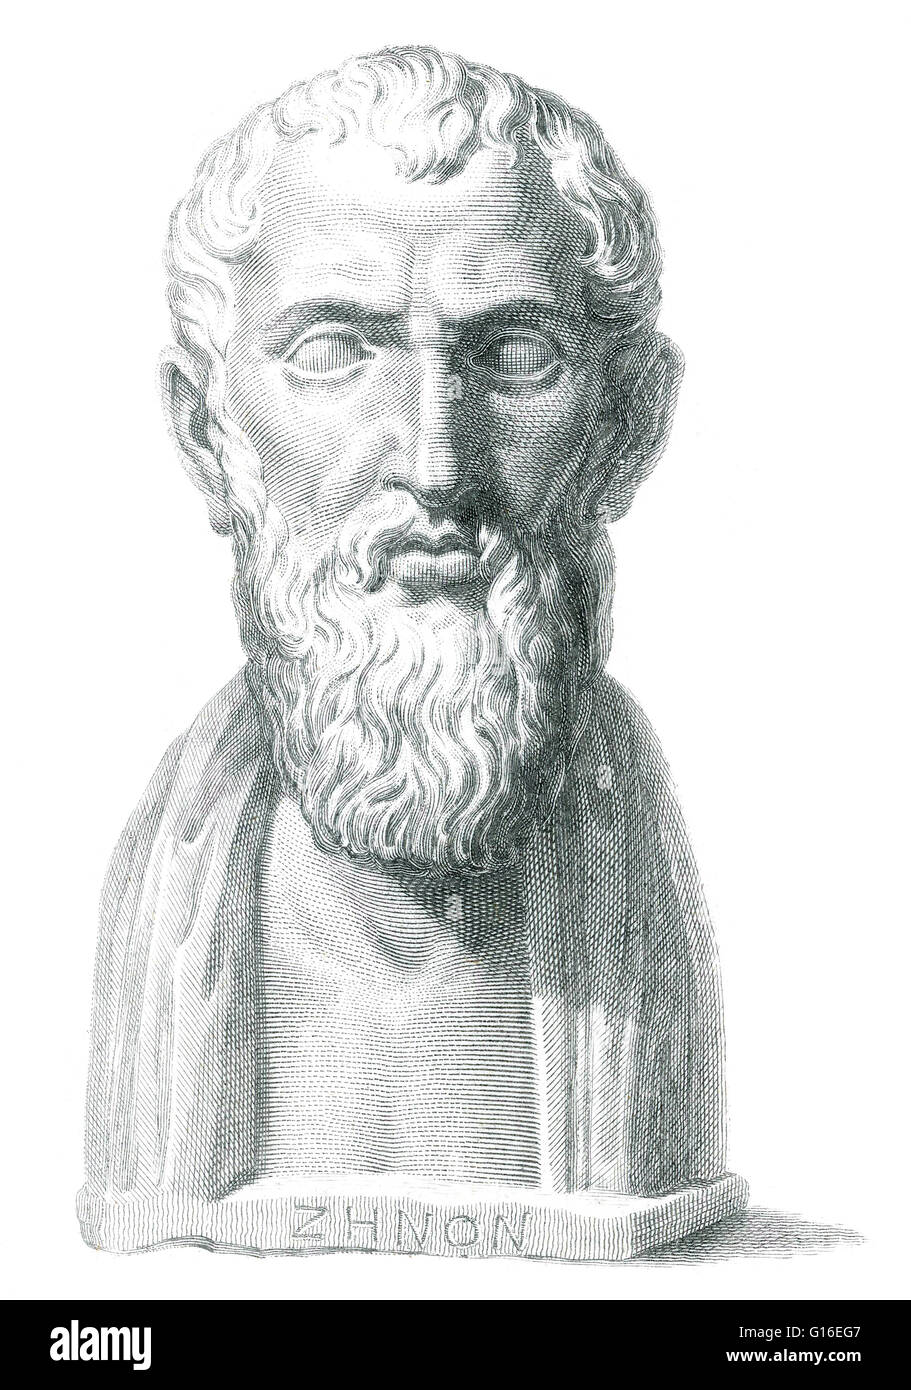 Zeno of Citium (334 - 262 BC) was an Ancient Greek philosopher. He was the founder of the Stoic school of philosophy, - Stock Image